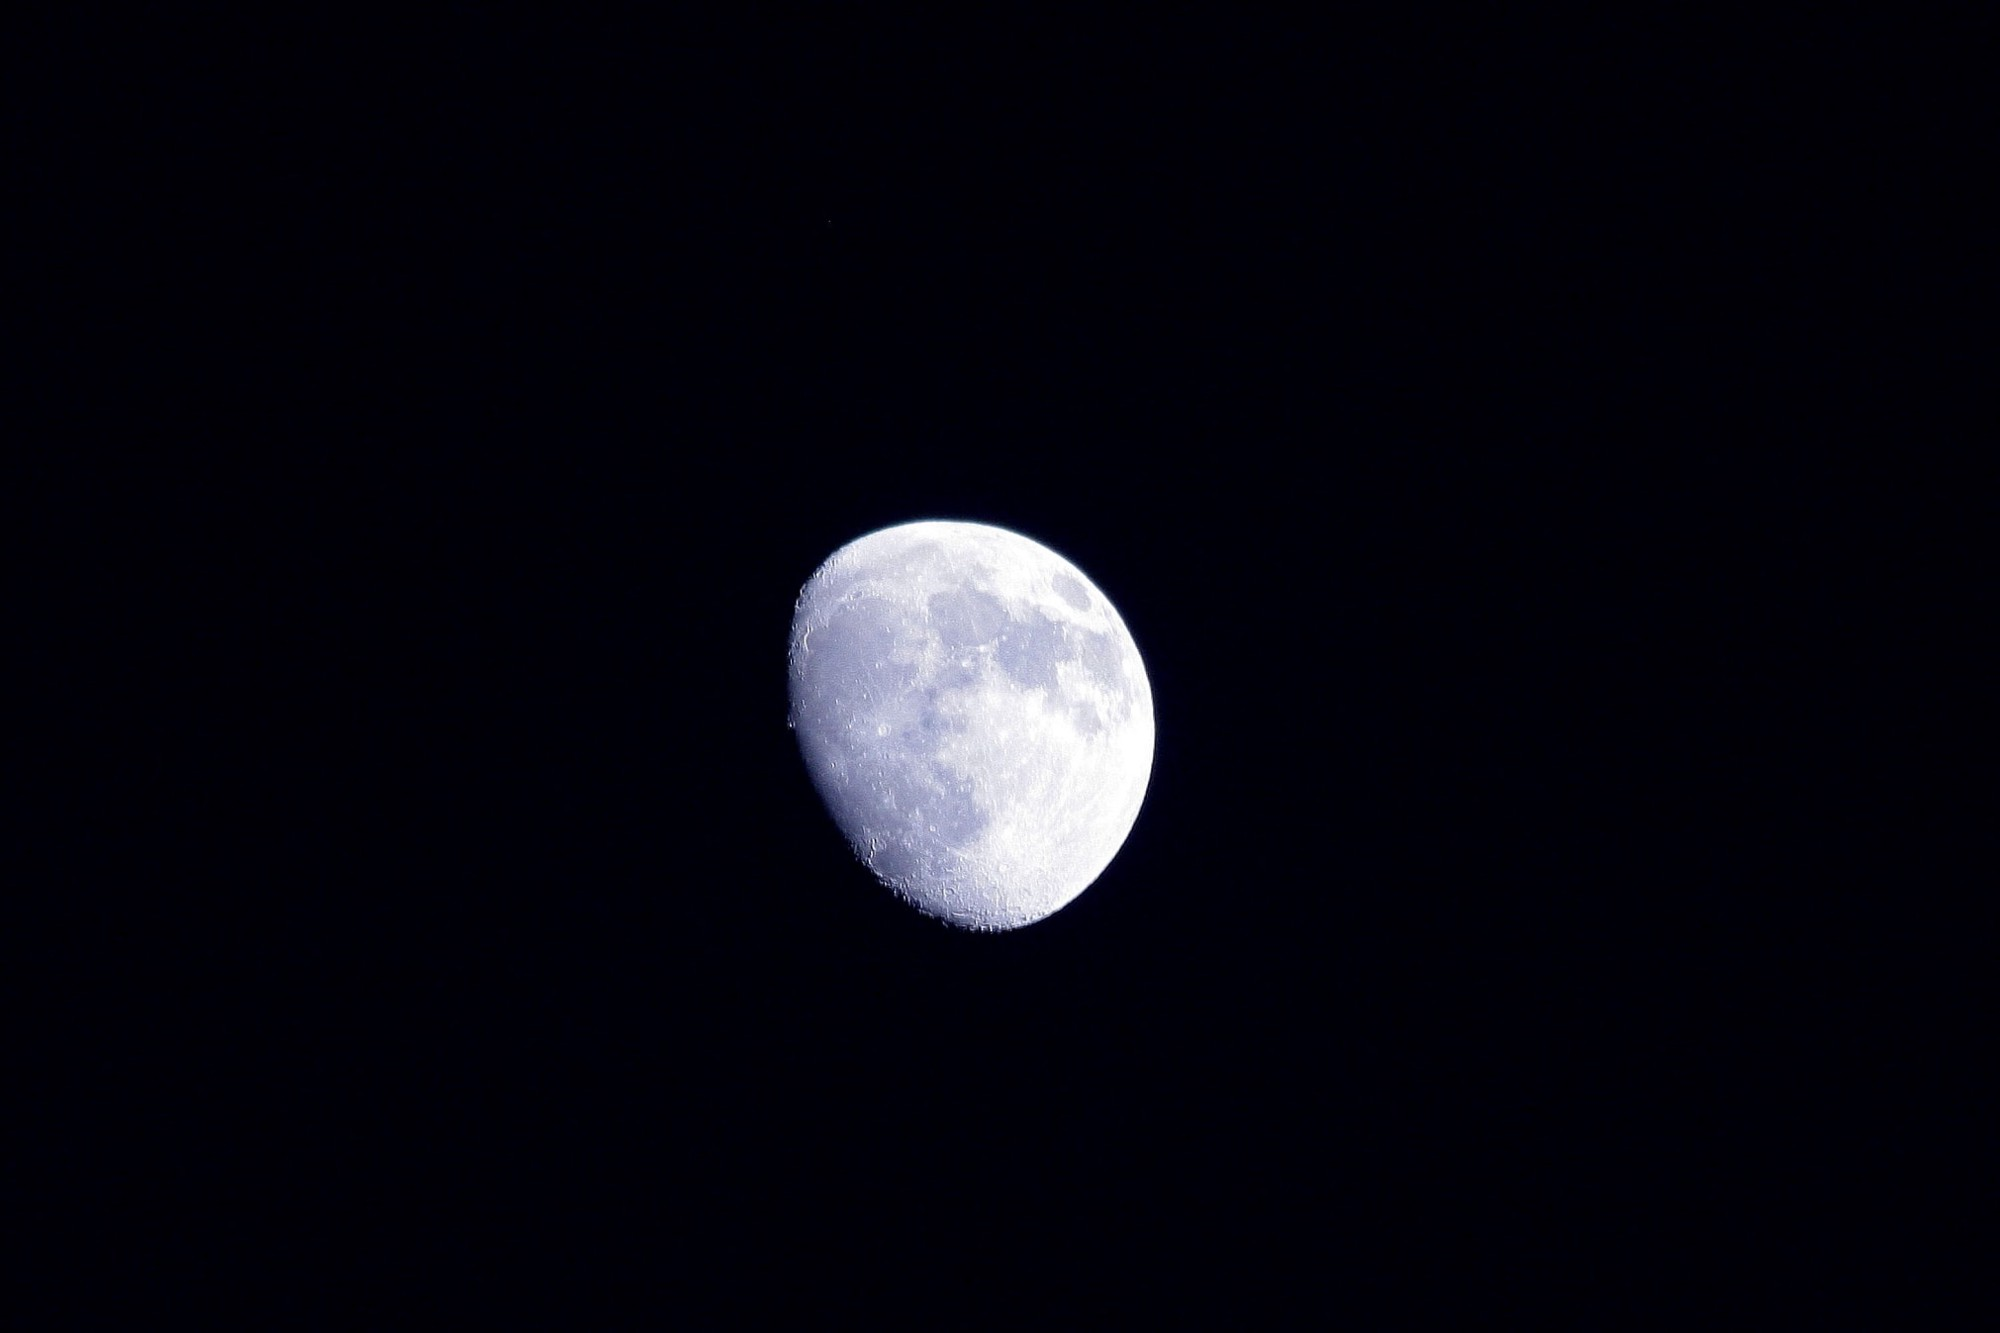 Moon against the blackness of space